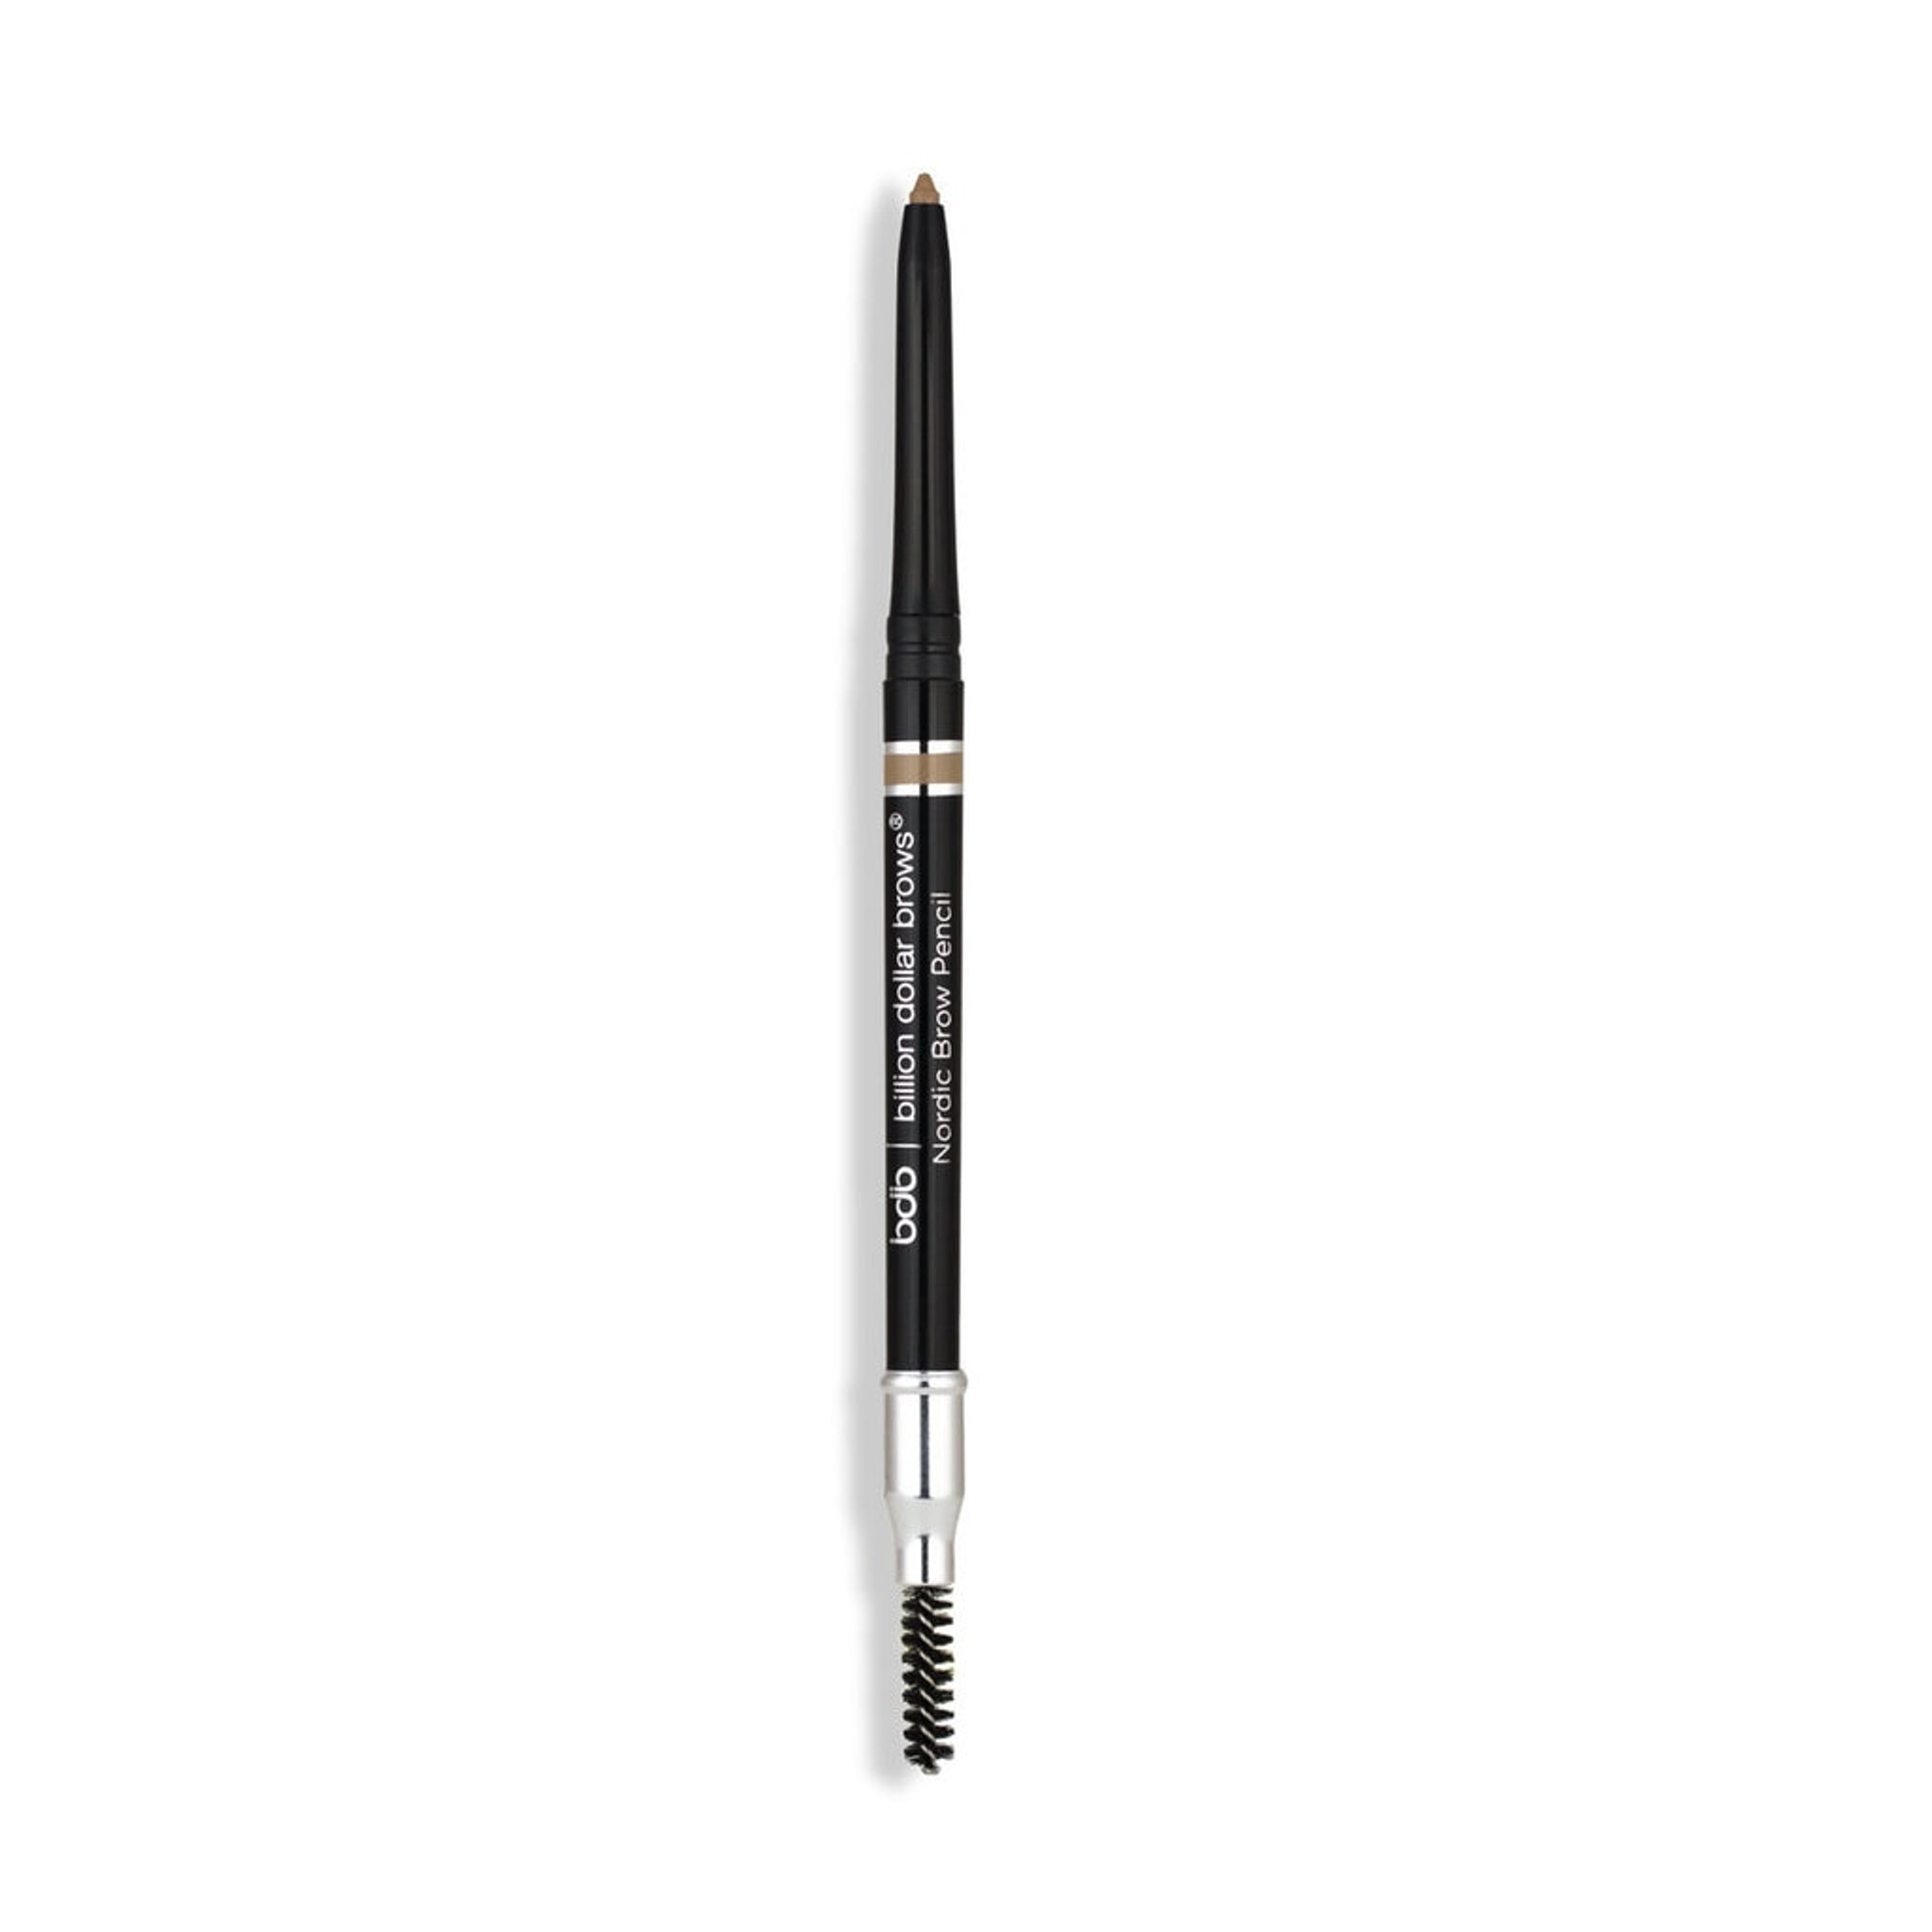 bdb nordic brow pencil